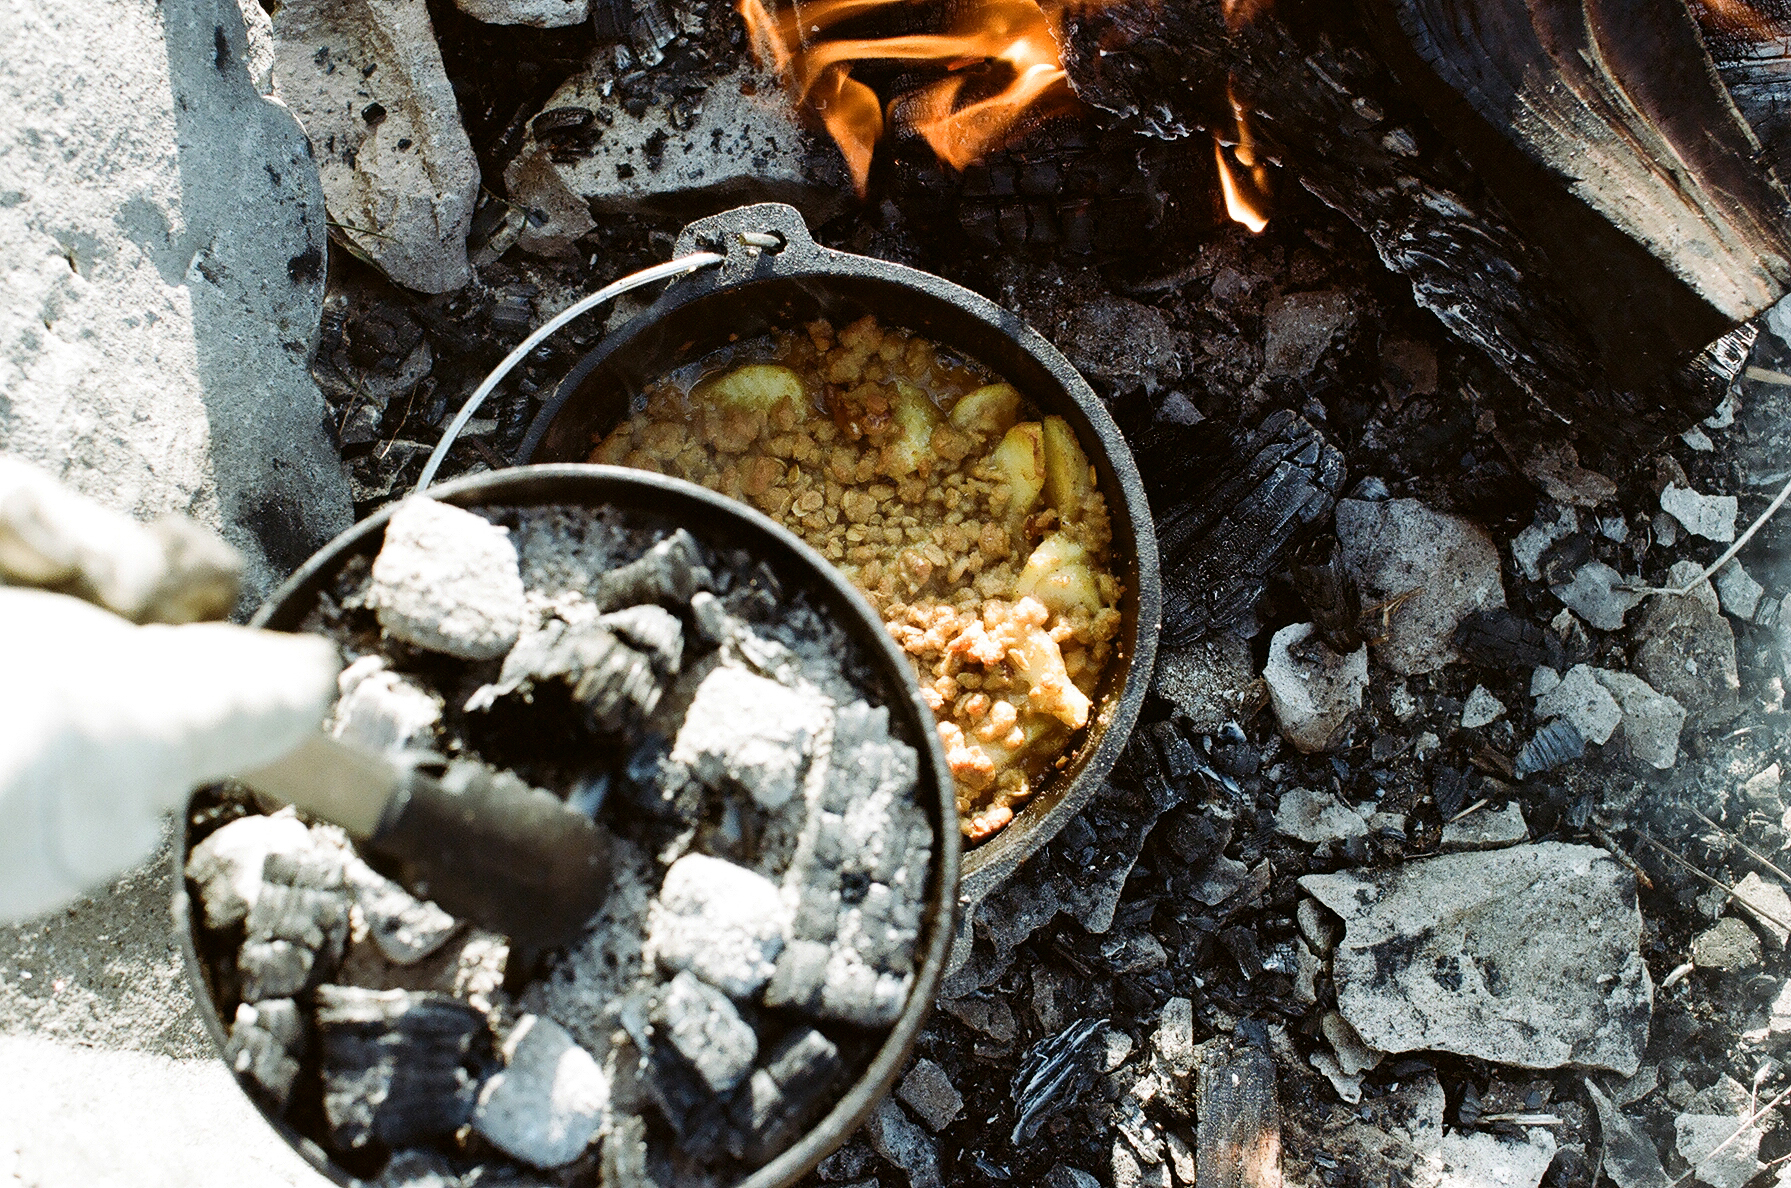 Wholier-Than-Thou: Cooking in the Great Outdoors